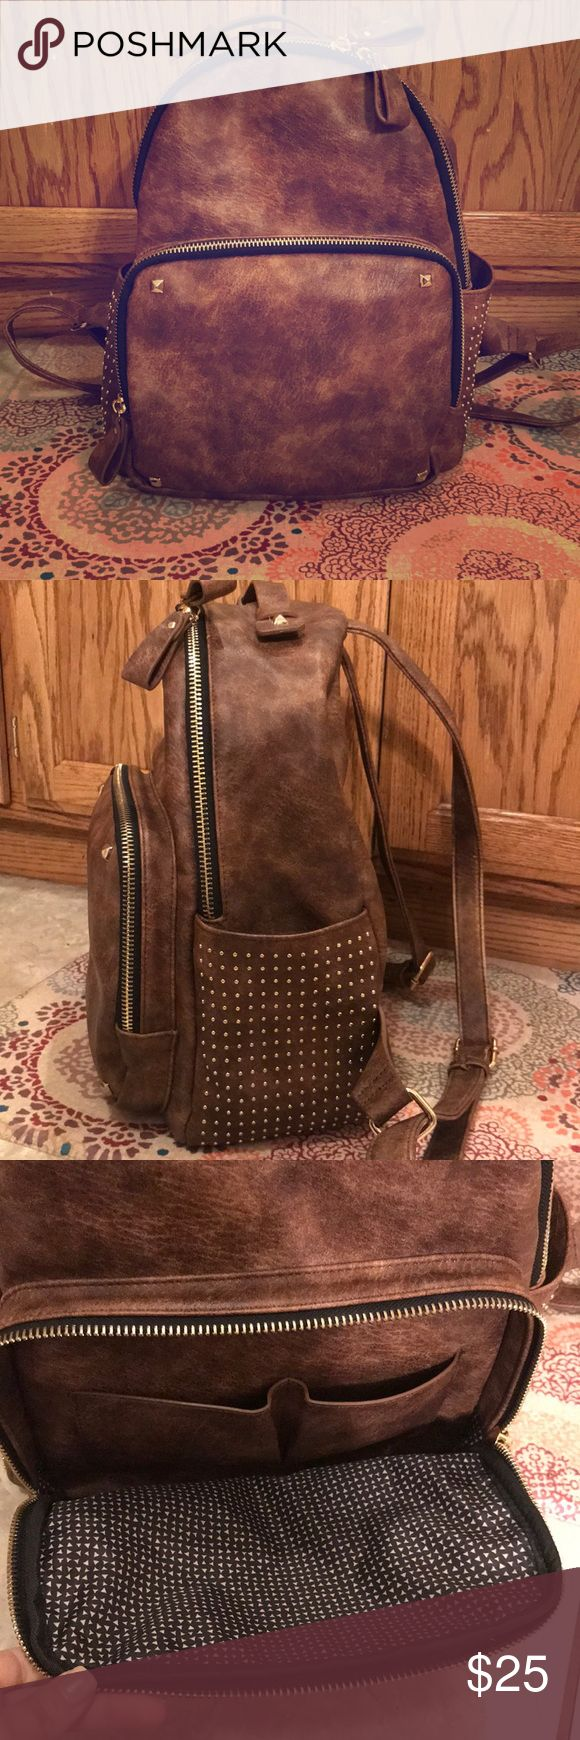 MMS Backpack Faux leather with gold detailing and studs. Full size backpack.  11in wide, 12in tall MMS Bags Backpacks